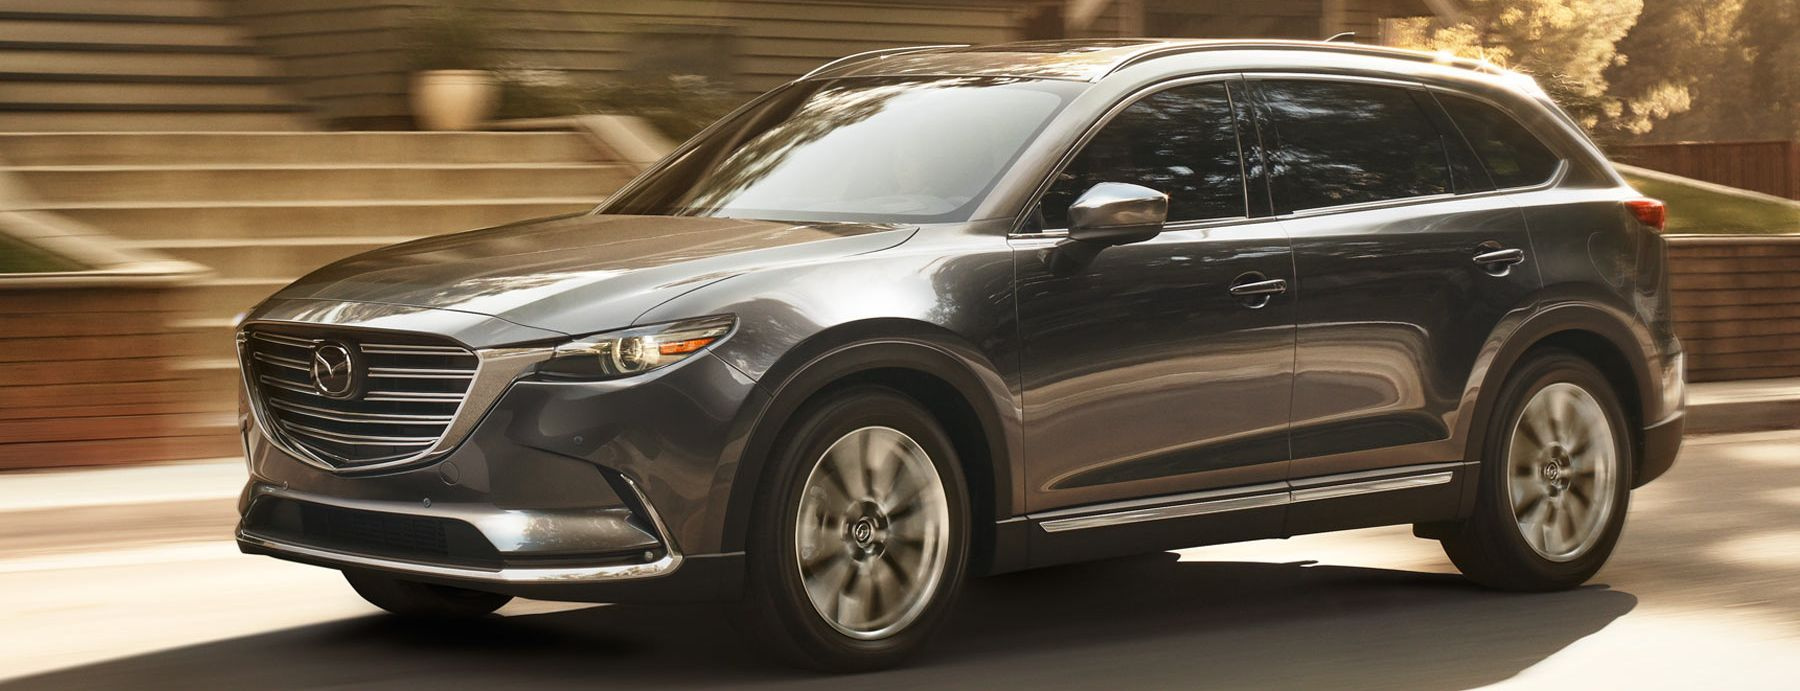 2018 Mazda CX-9 for Sale near Sacramento, CA